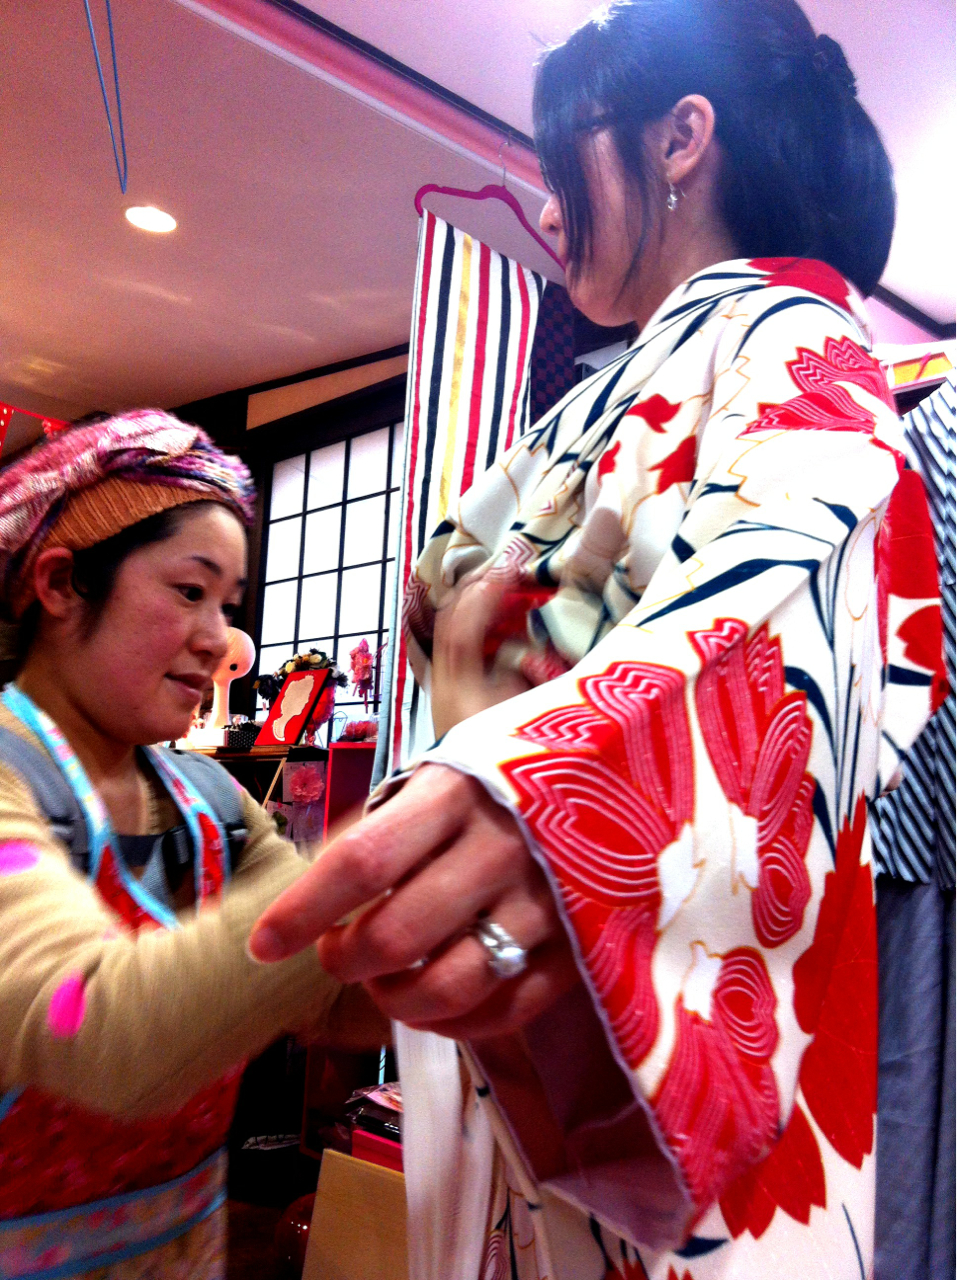 Went to the kimono shop to try some on just for fun.